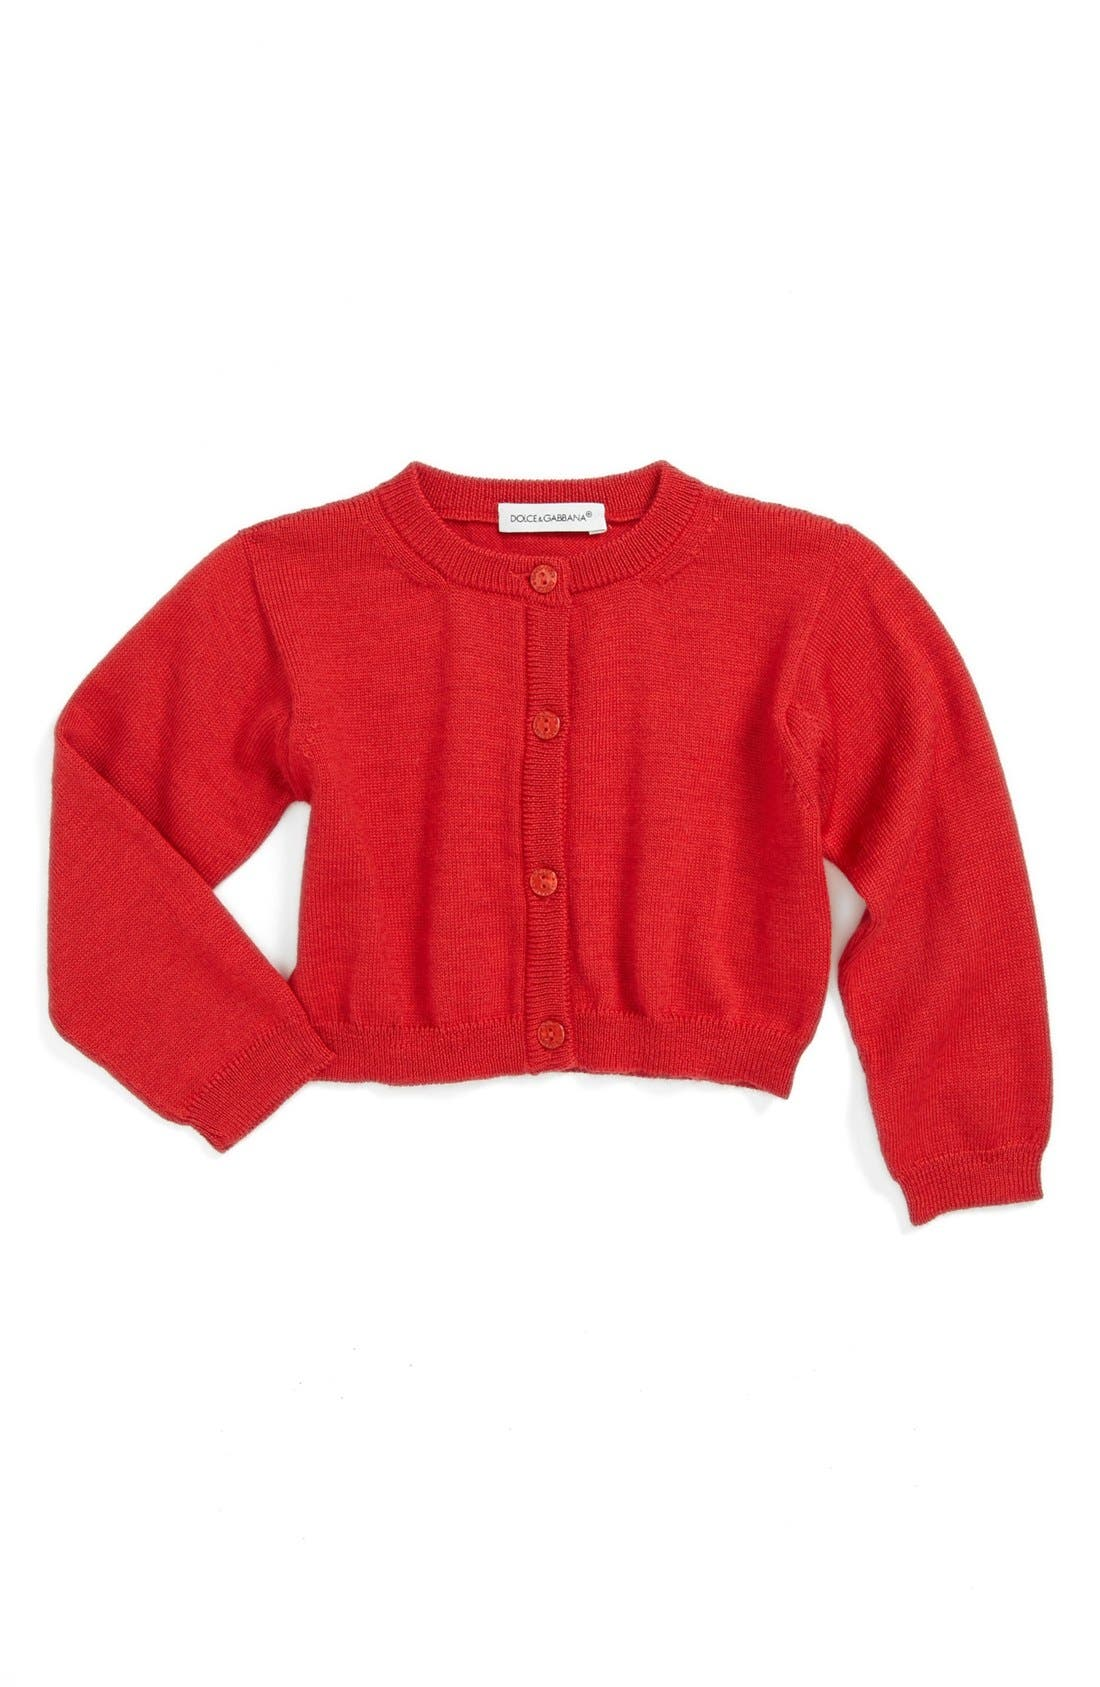 Alternate Image 1 Selected - Dolce&Gabanna Wool Cardigan (Baby Girls)